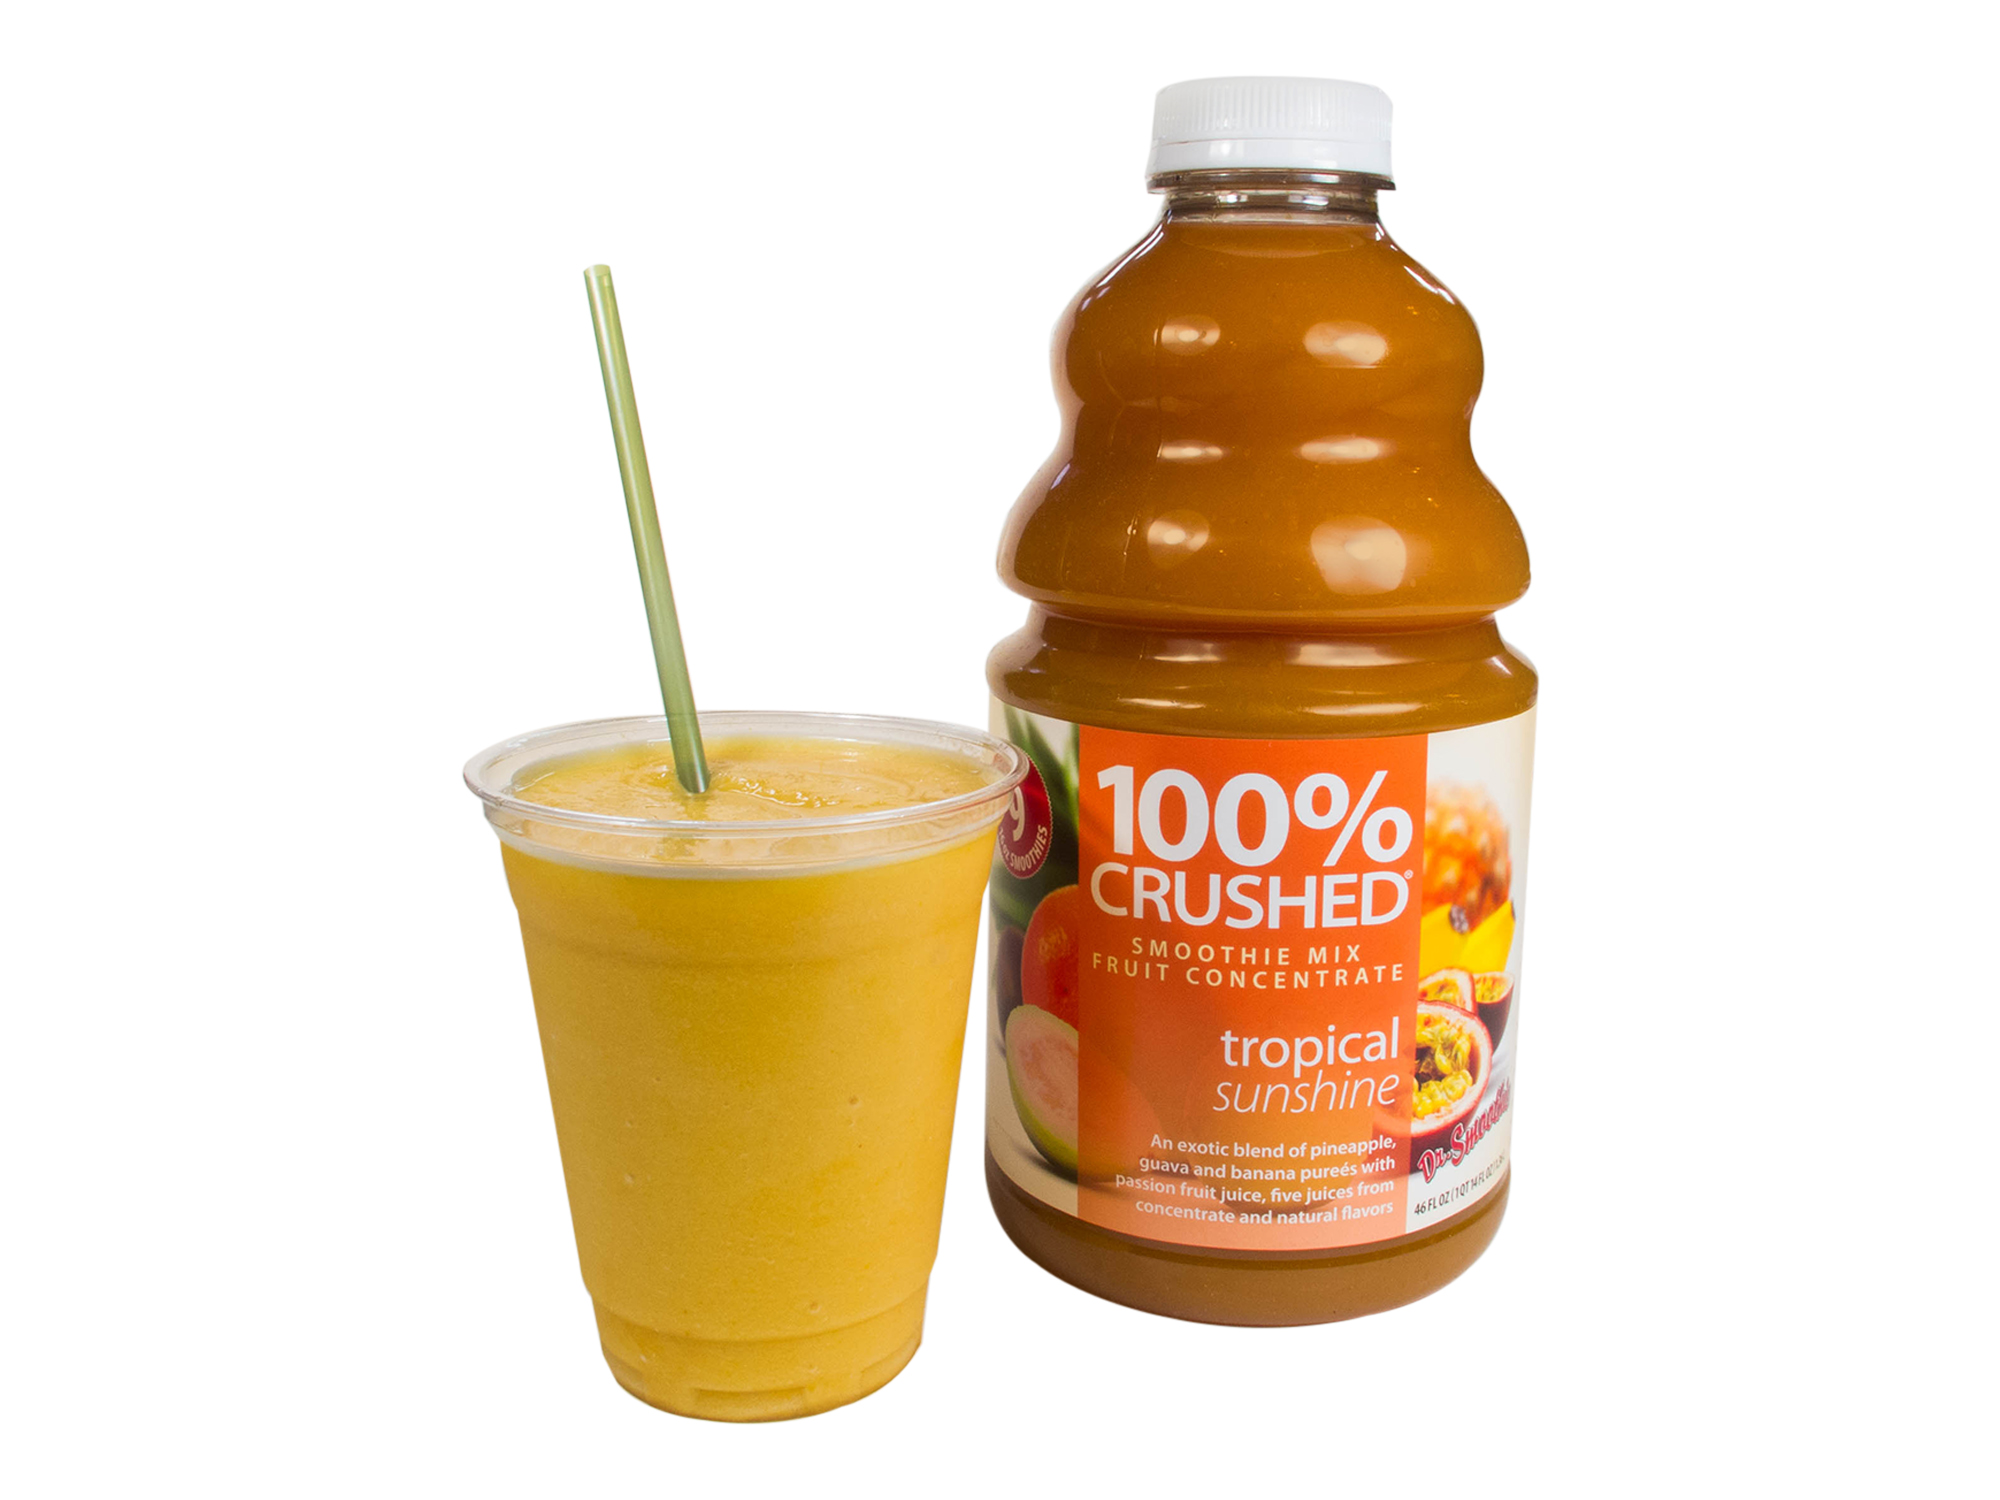 Dr. Smoothie - 100% Crushed Tropical Sunshine smoothie